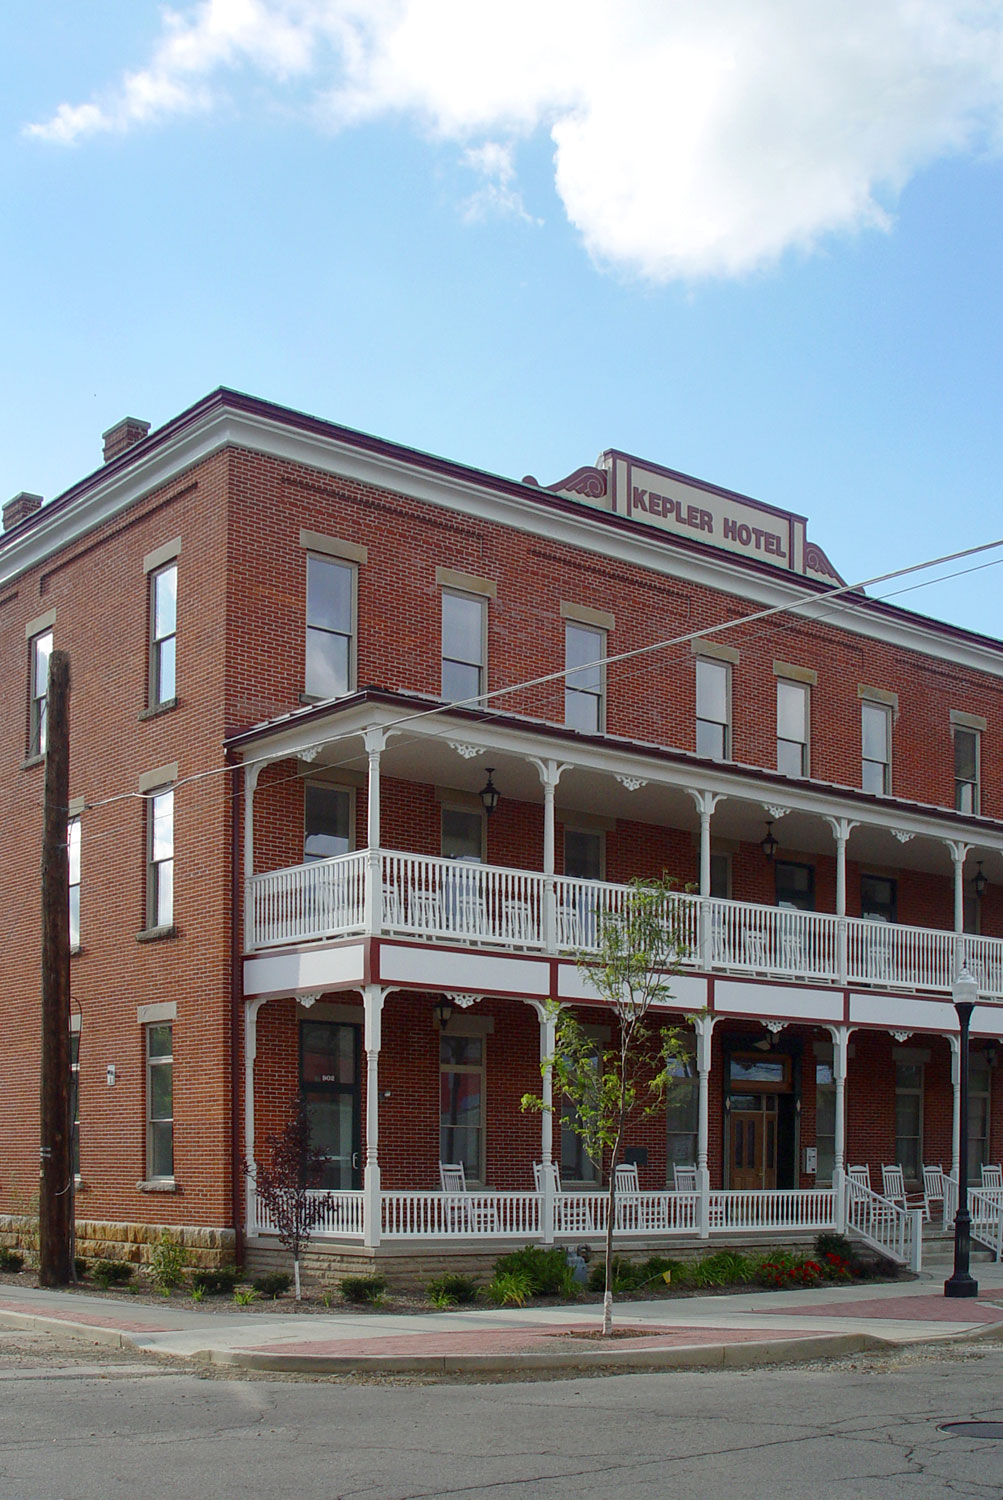 The Kepler Hotel Is In Heart Of Historic District Meadville Pa Immediately Adjacent To Old Market House Remaining Portion Block